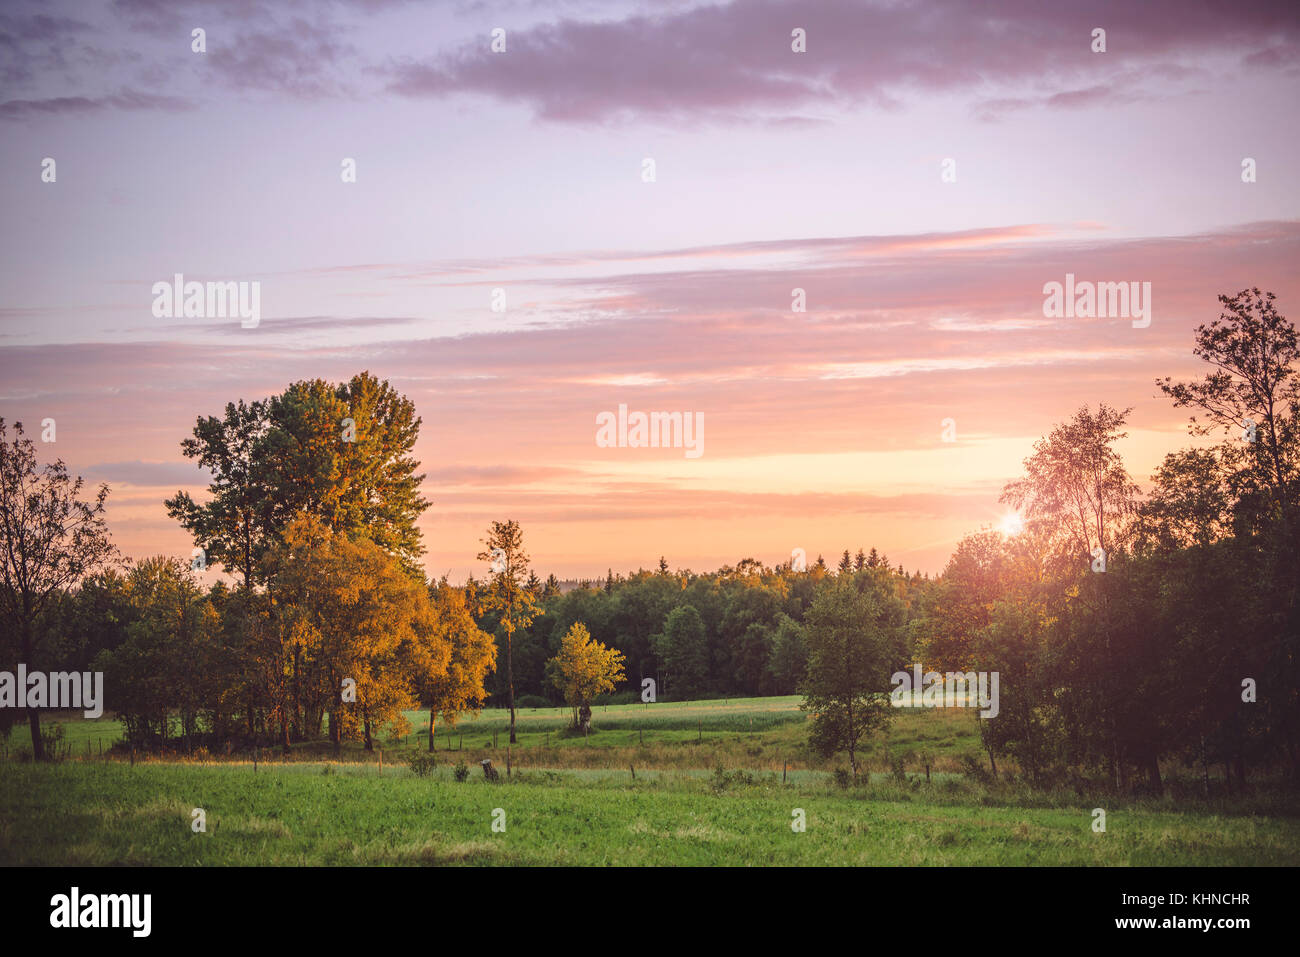 Sunset in a countryside landscape with trees and meadows with a violet light in the sky - Stock Image